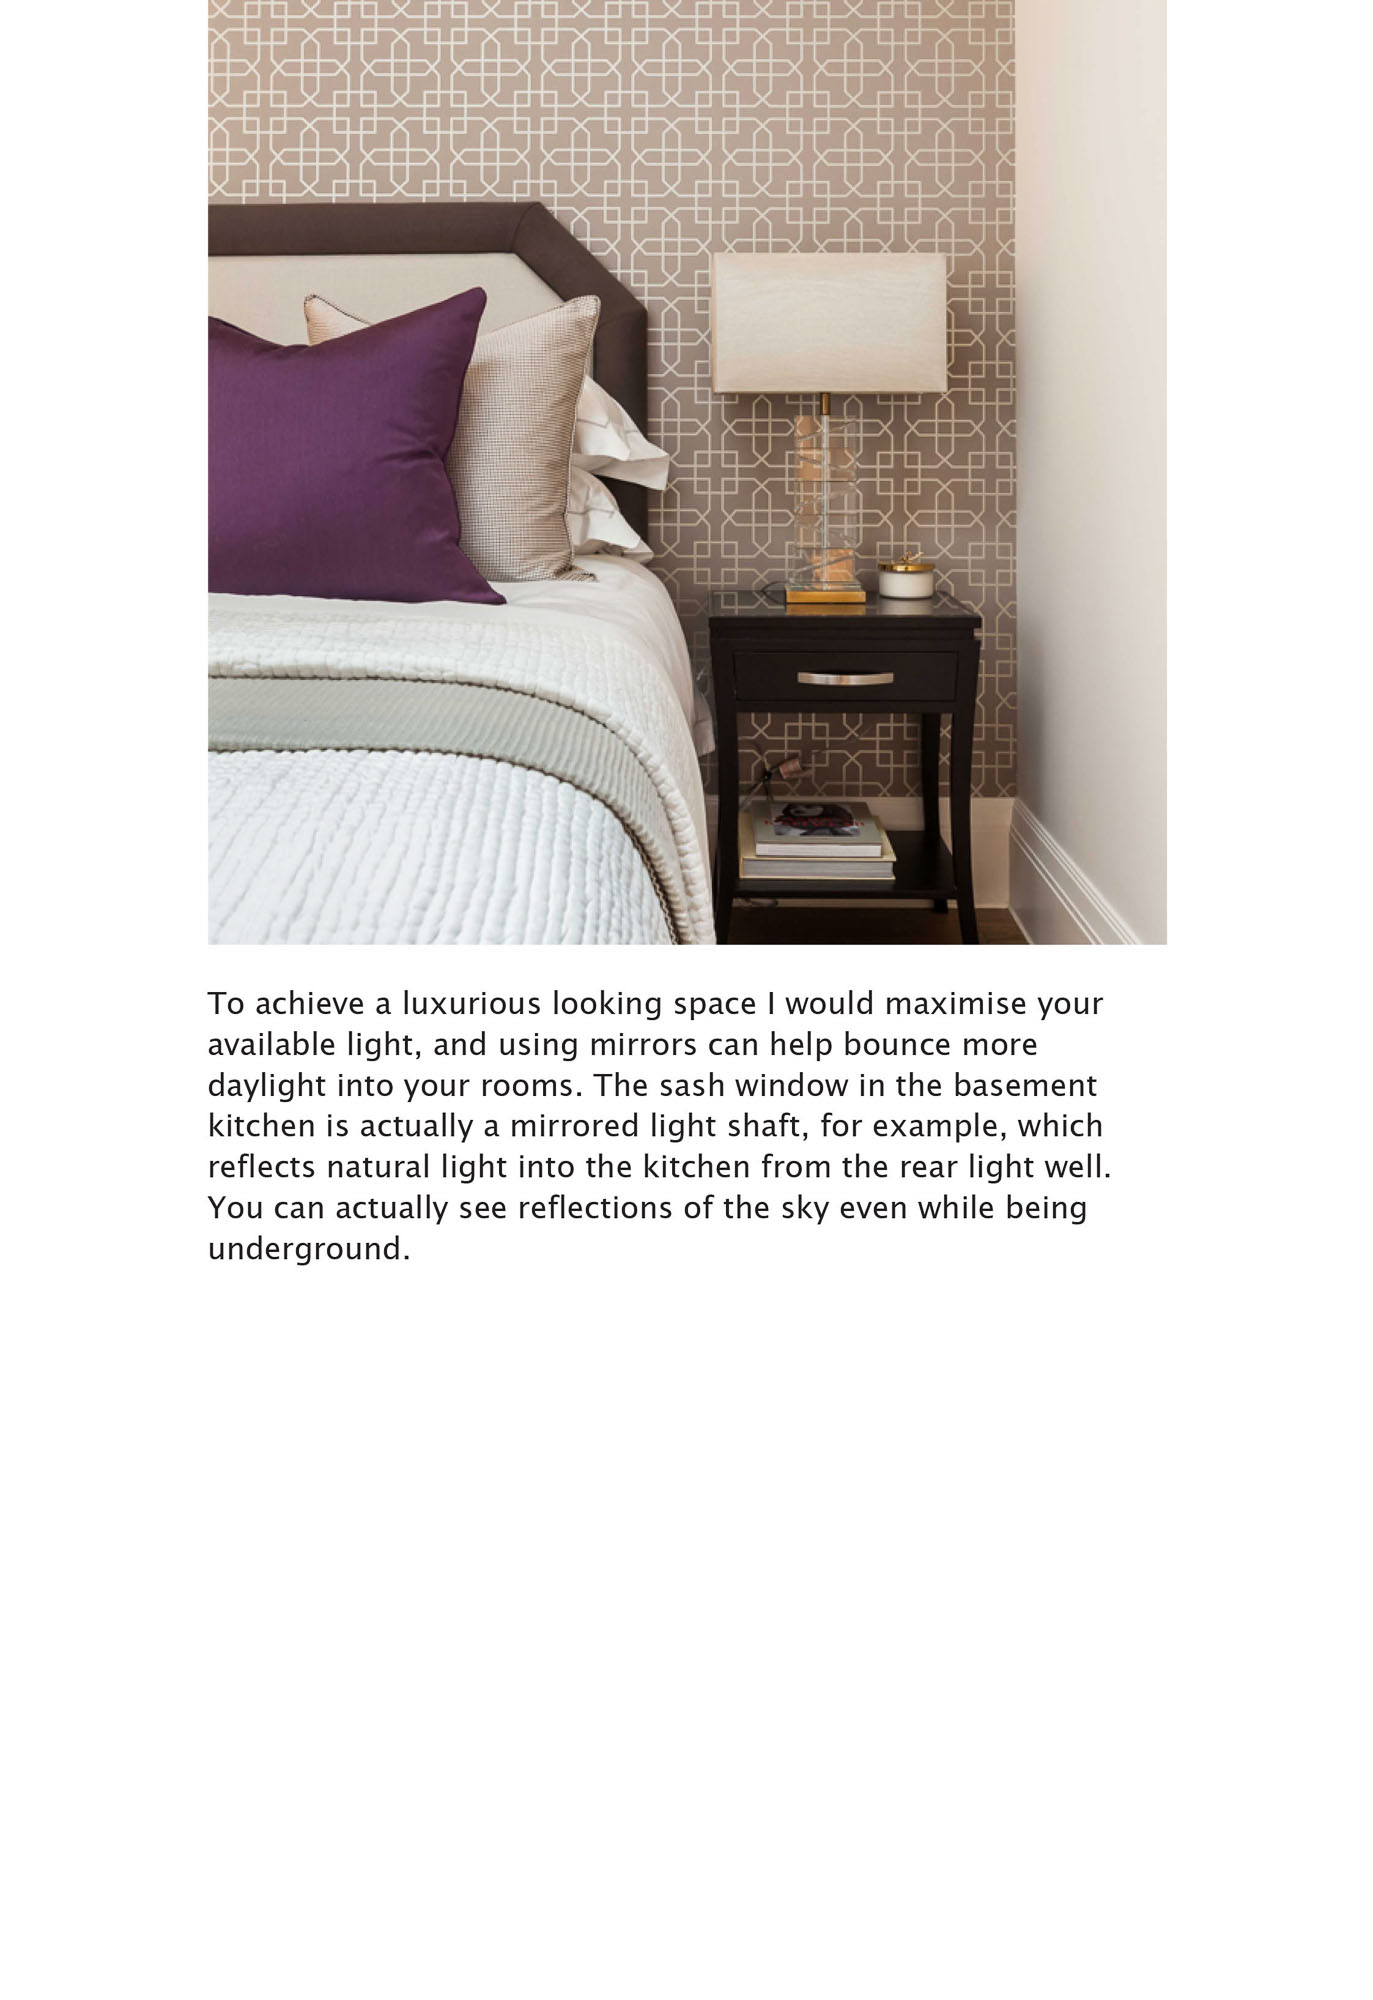 achica-living-chelsea-townhouse-by-designer-susie-rumbold-01-03-7-2